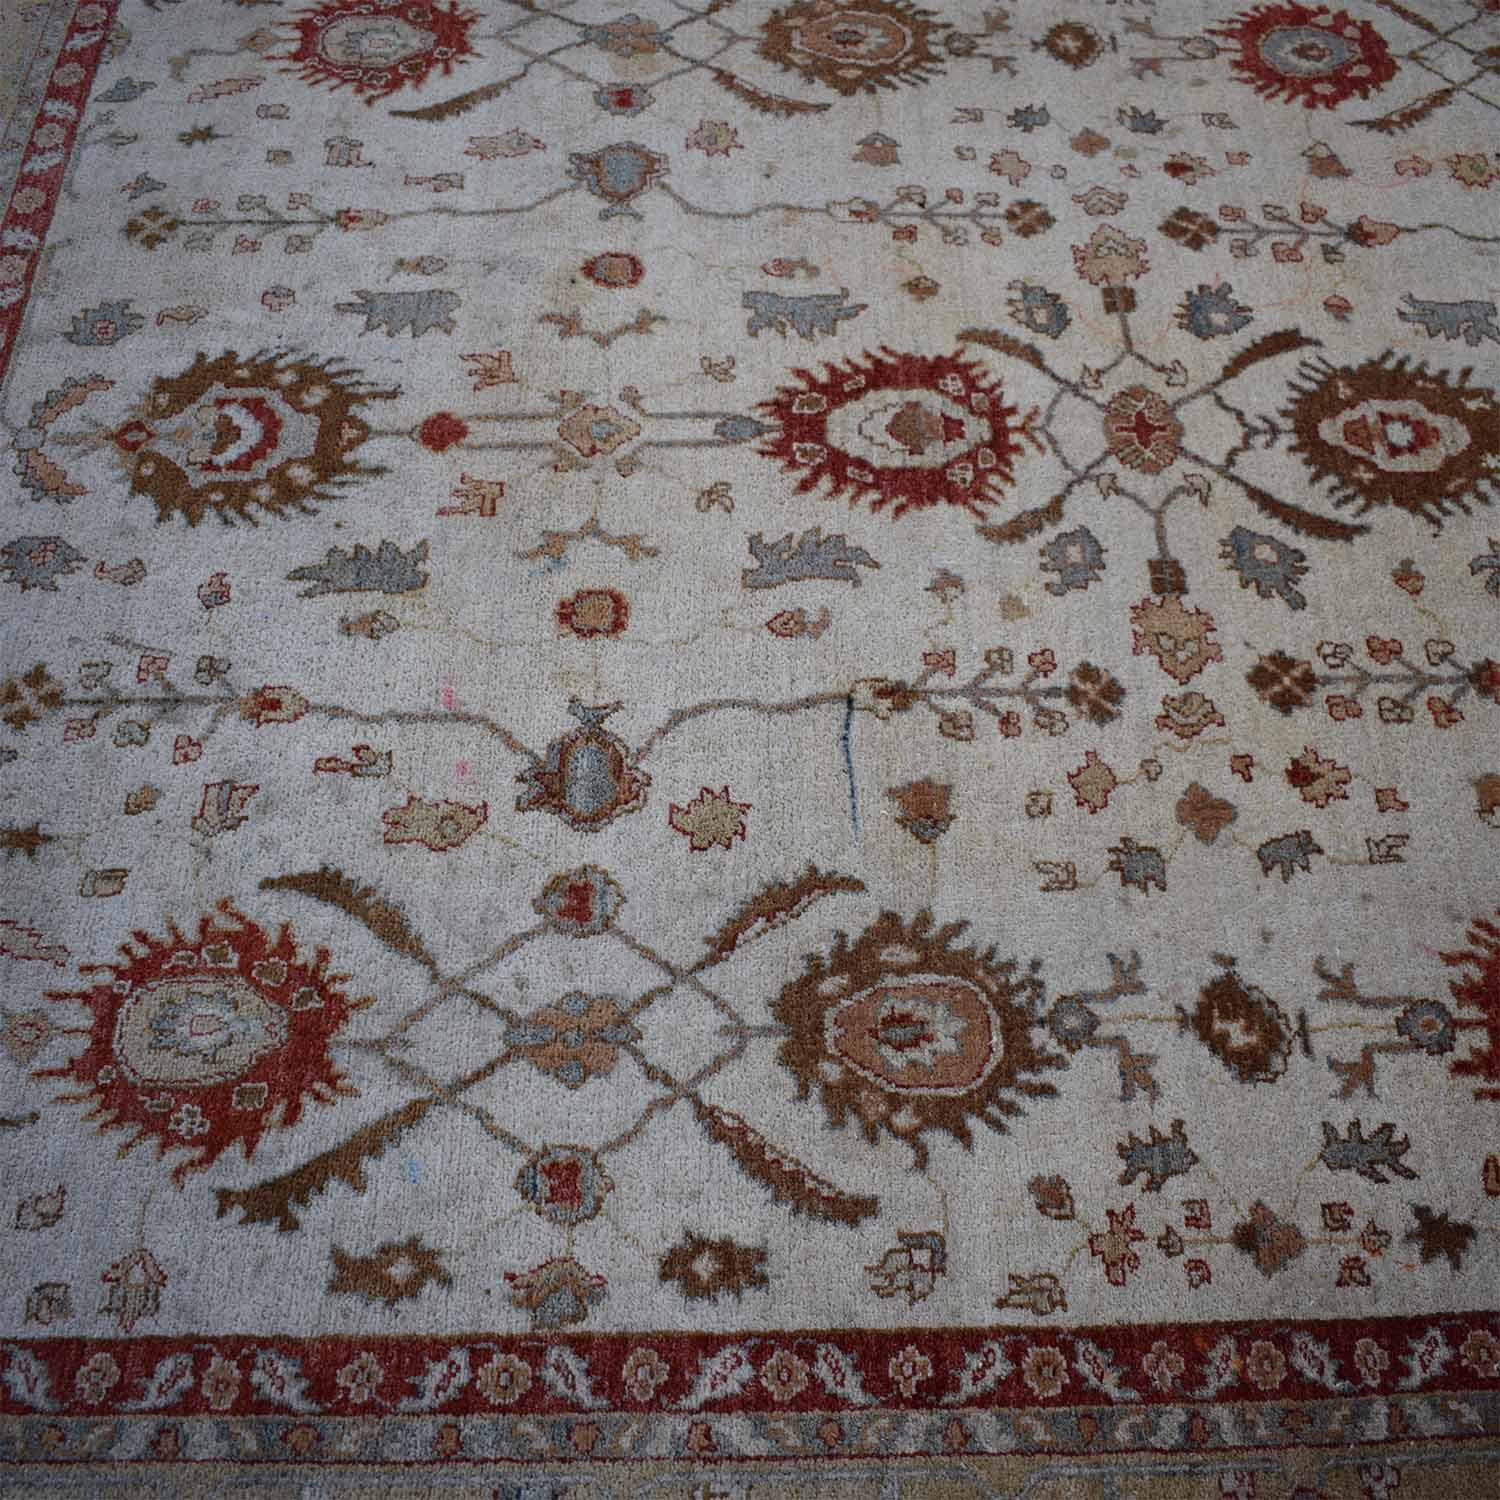 Oriental Rug for sale